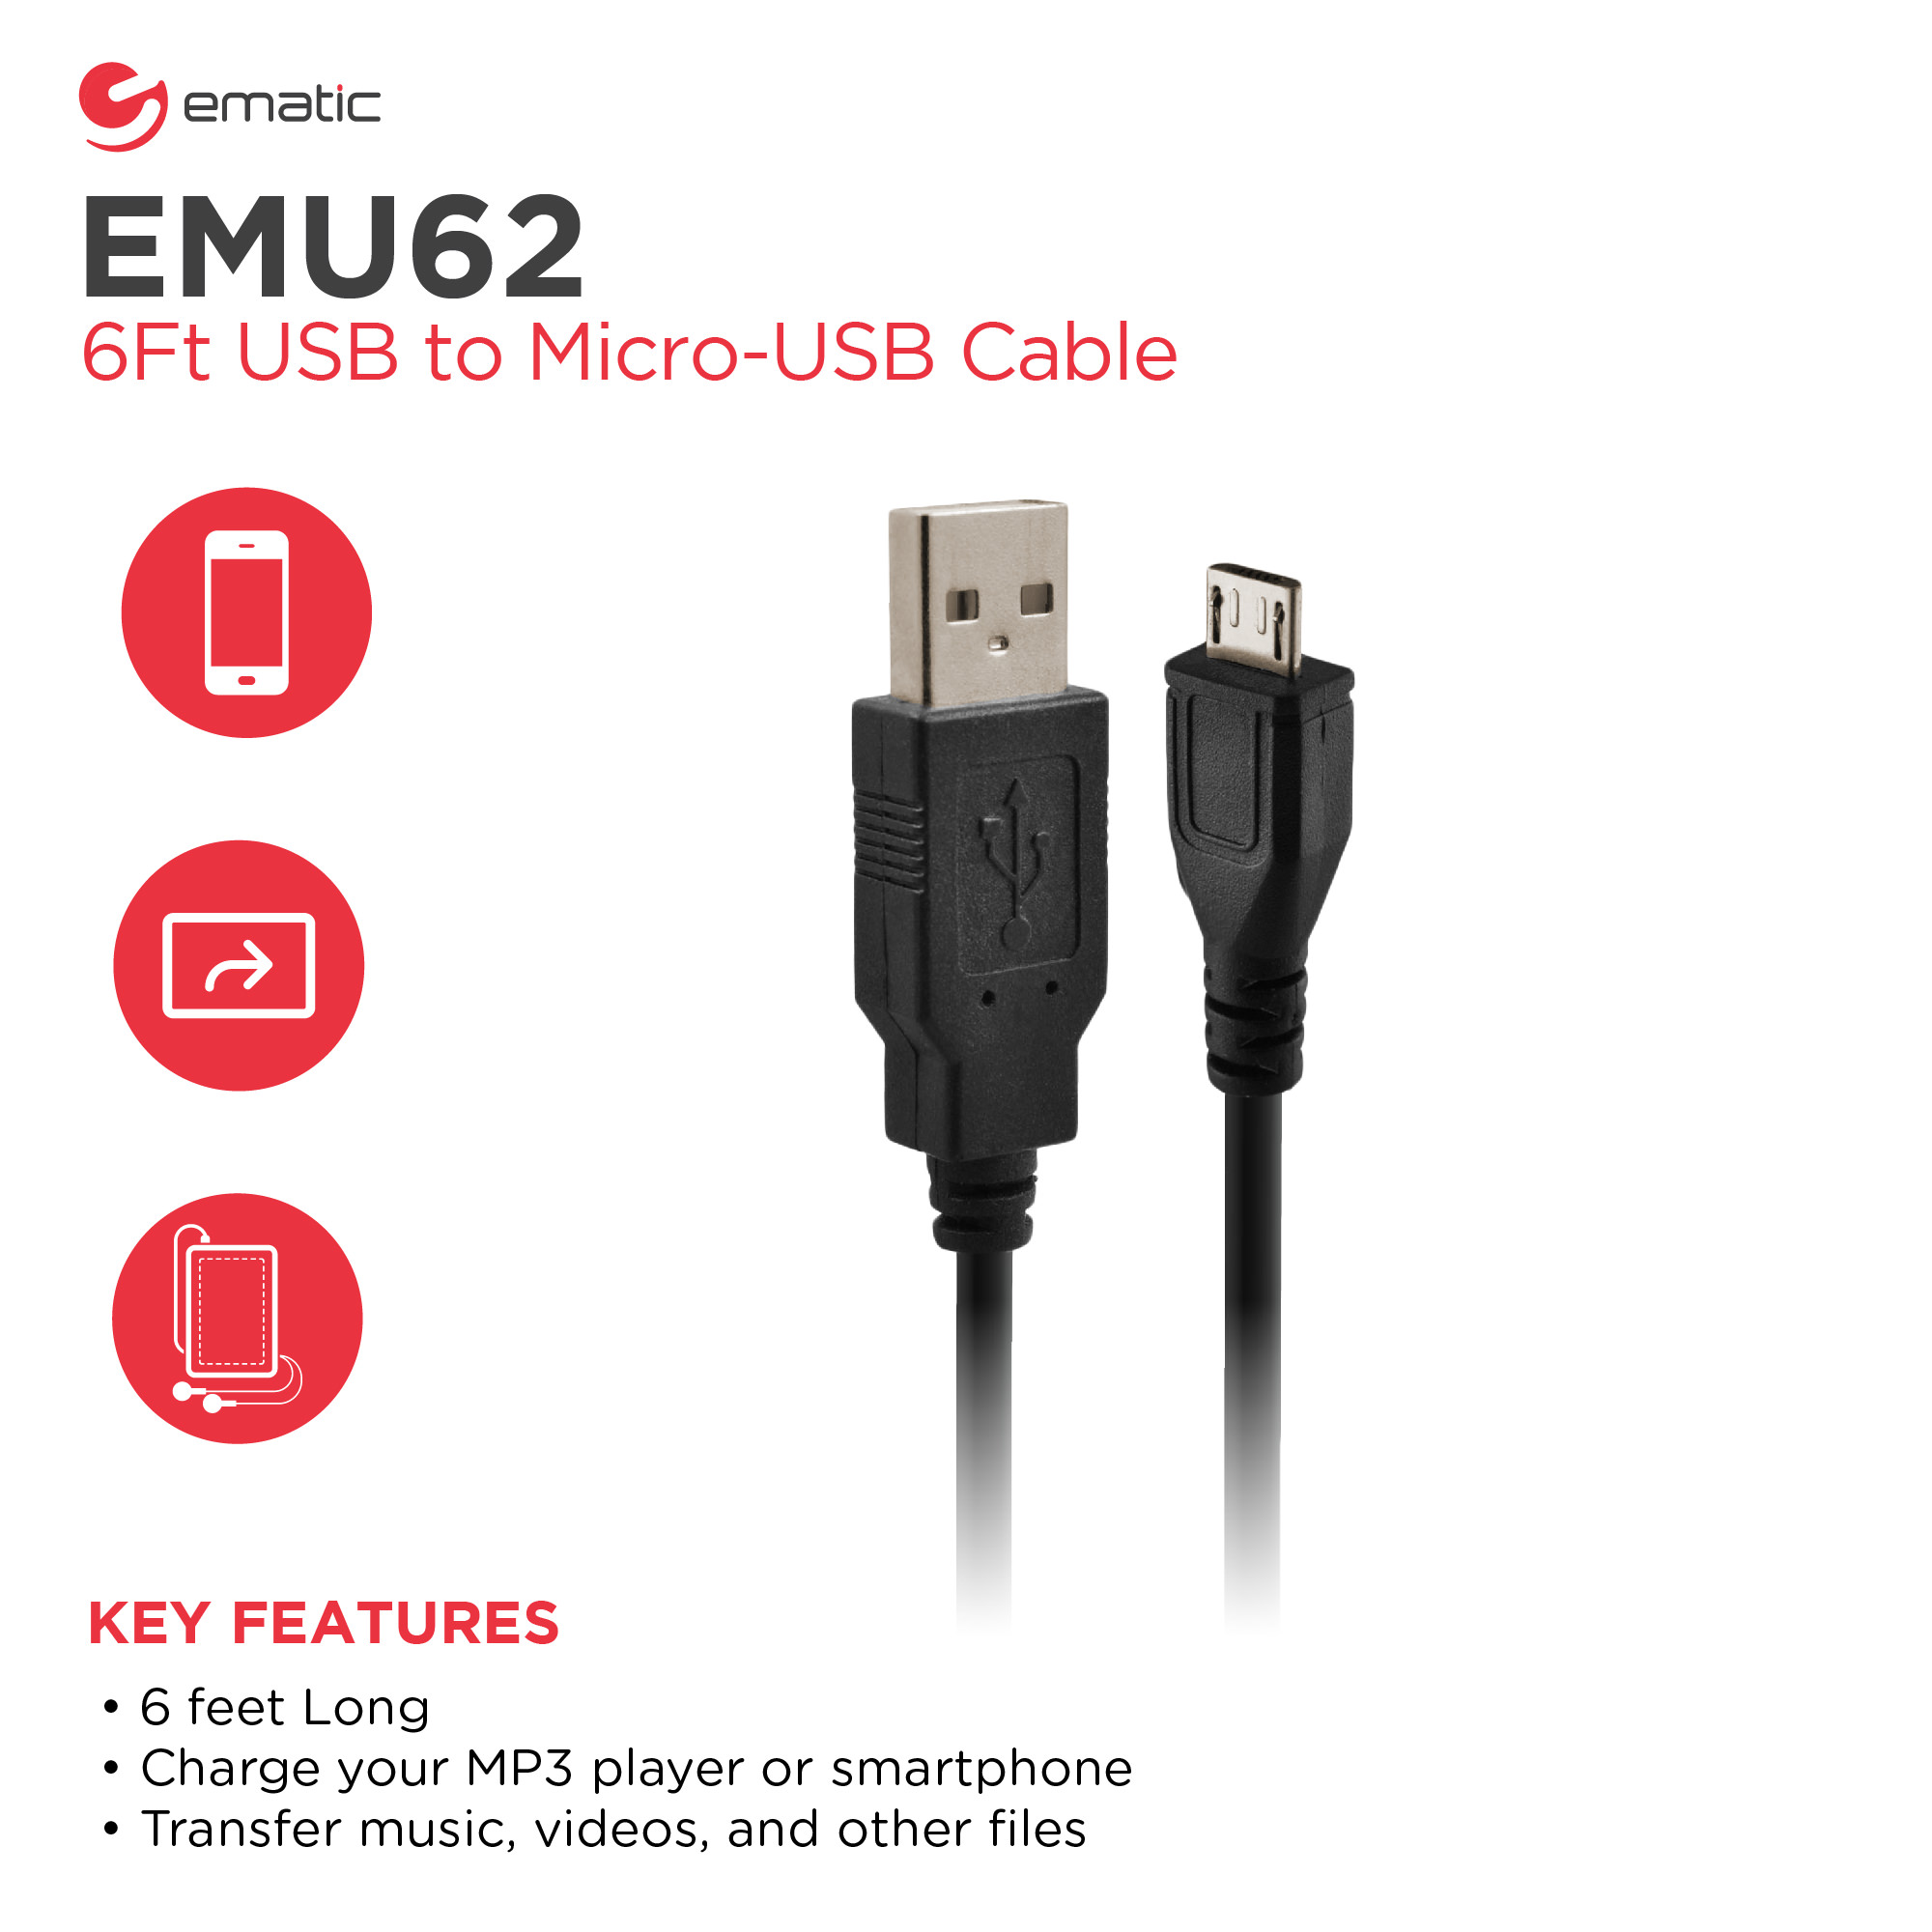 Ematic USB to Micro-USB Cable (6 Ft)